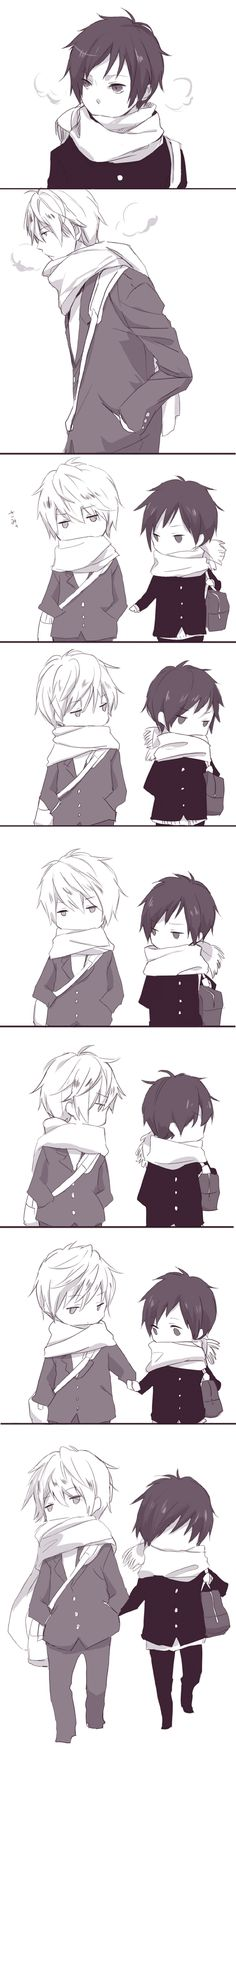 Aww, how cute =P Izaya wants to hold hands~